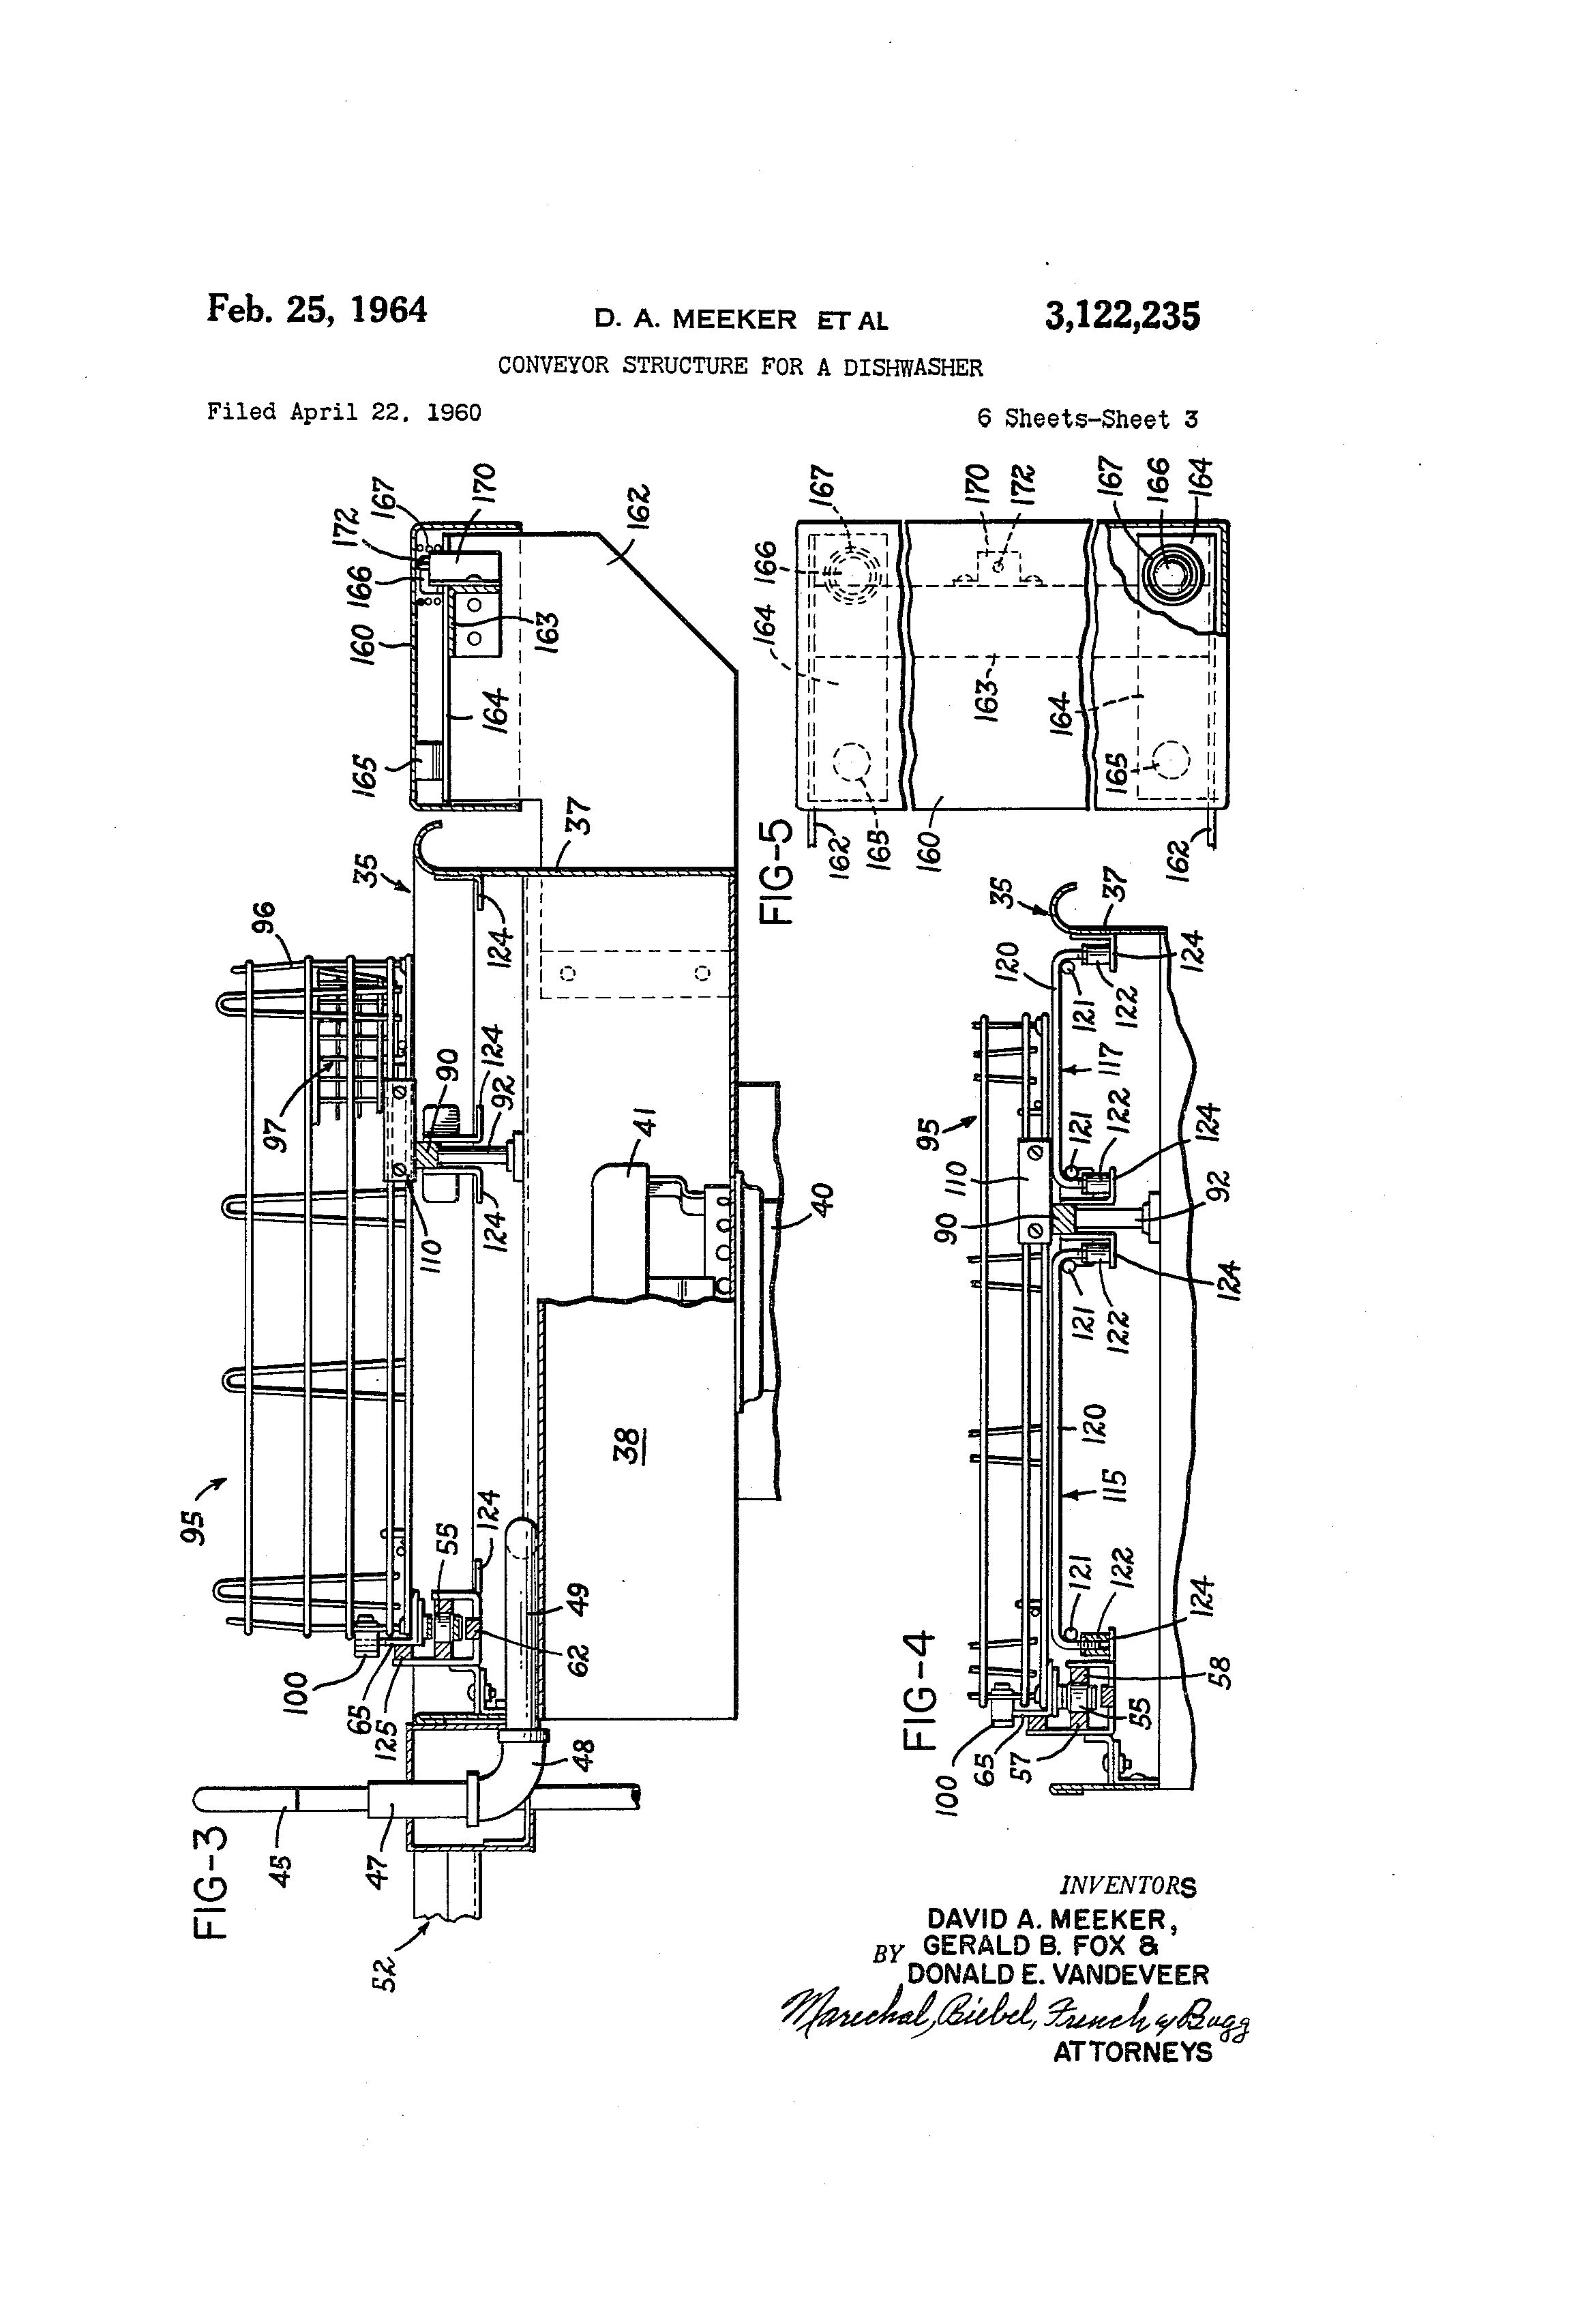 Wiring Diagrams For Hobart Disposals. Gandul. 45.77.79.119 on